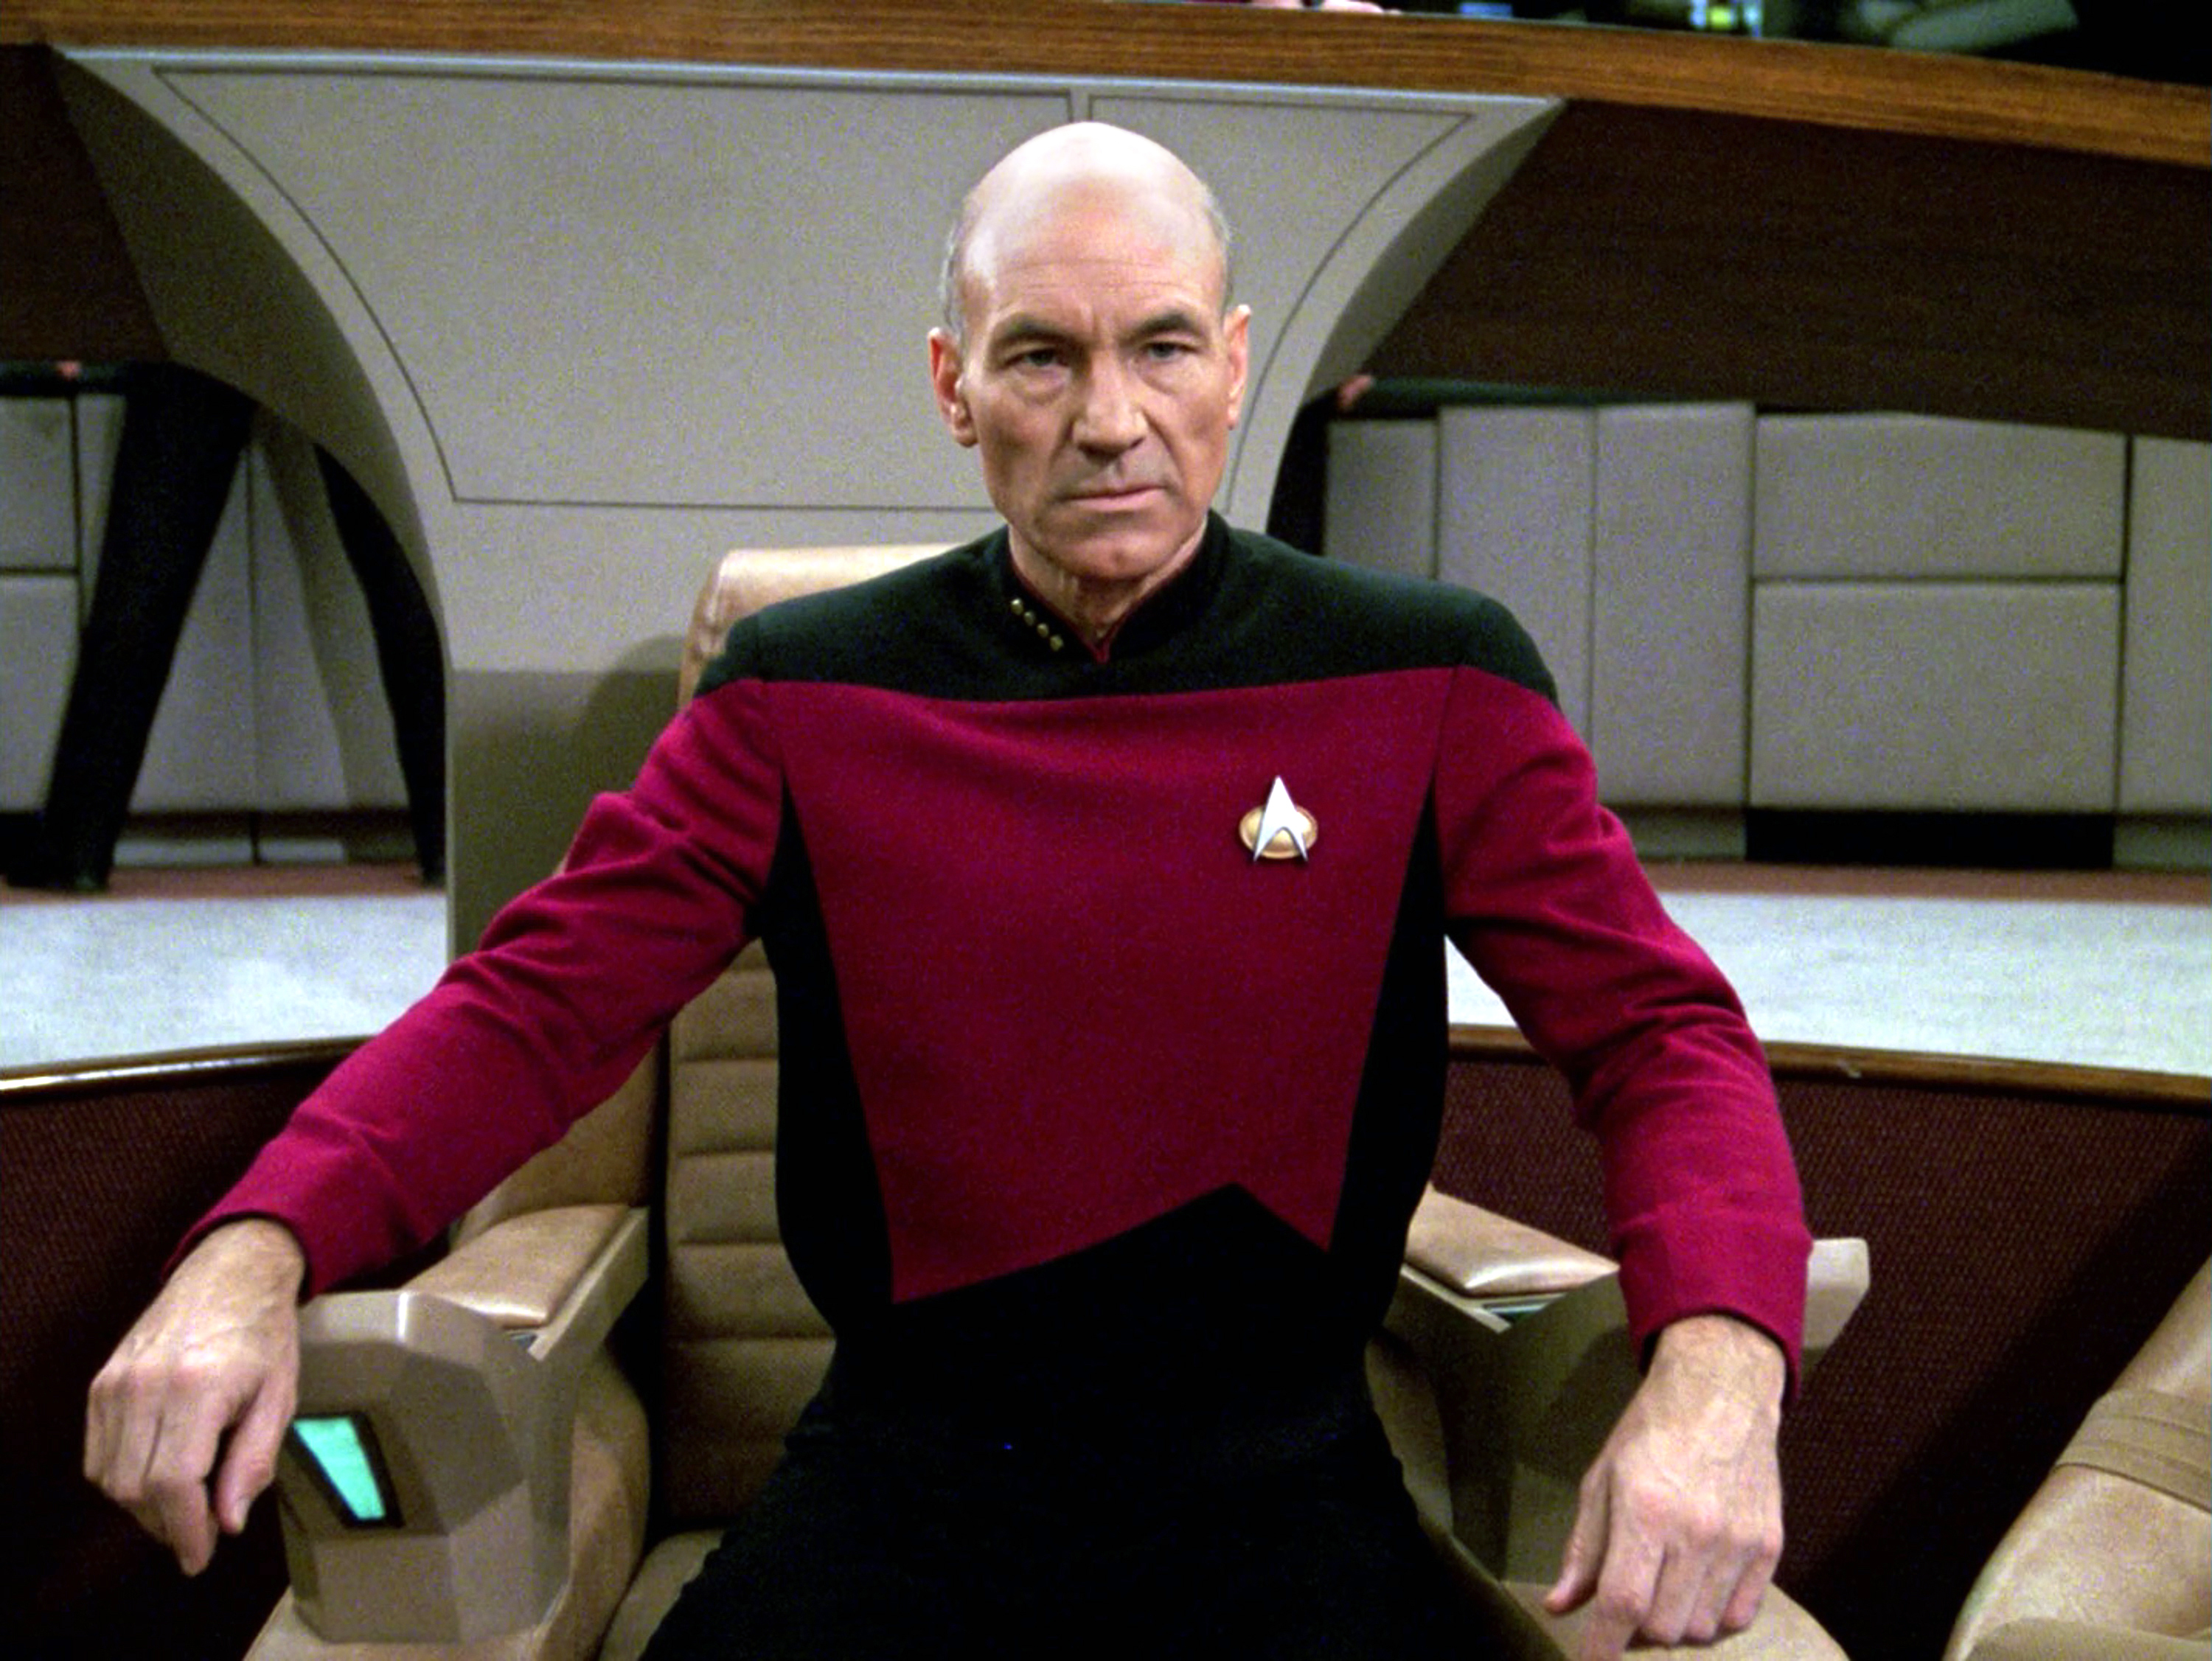 """Patrick Stewart as Captain Jean-Luc Picard in the STAR TREK: THE NEXT GENERATION episode, """"The Hunted."""" Season 3, episode 11. Original air date, January 8, 1990. Image is a screen grab. Copyright © 1990 CBS Broadcasting Inc. All Rights Reserved. Credit: CBS Photo Archive."""